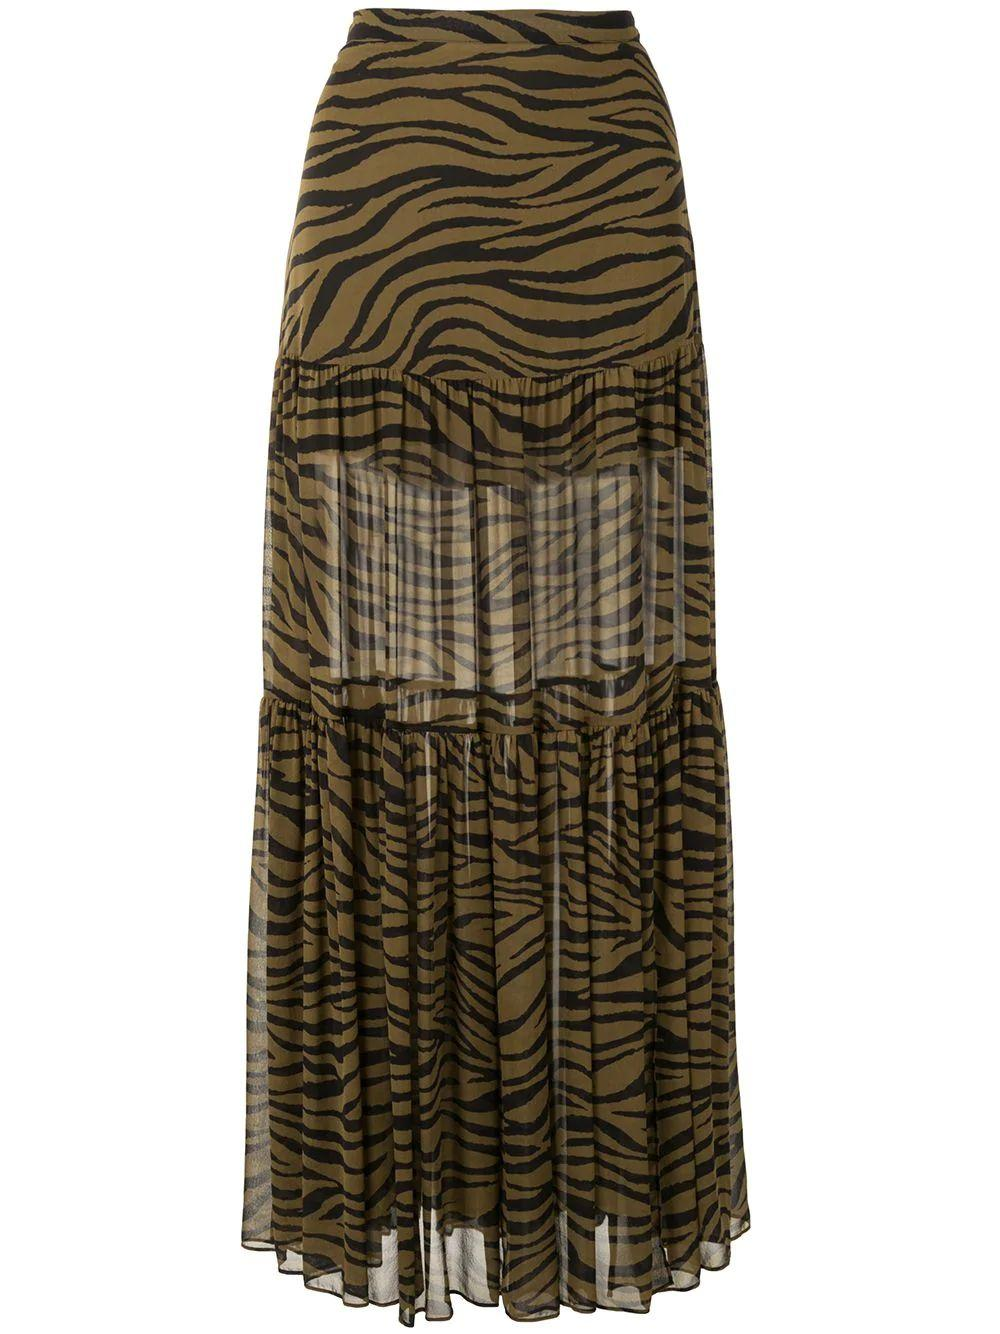 Serence Skirt Item # 2006GGT063214